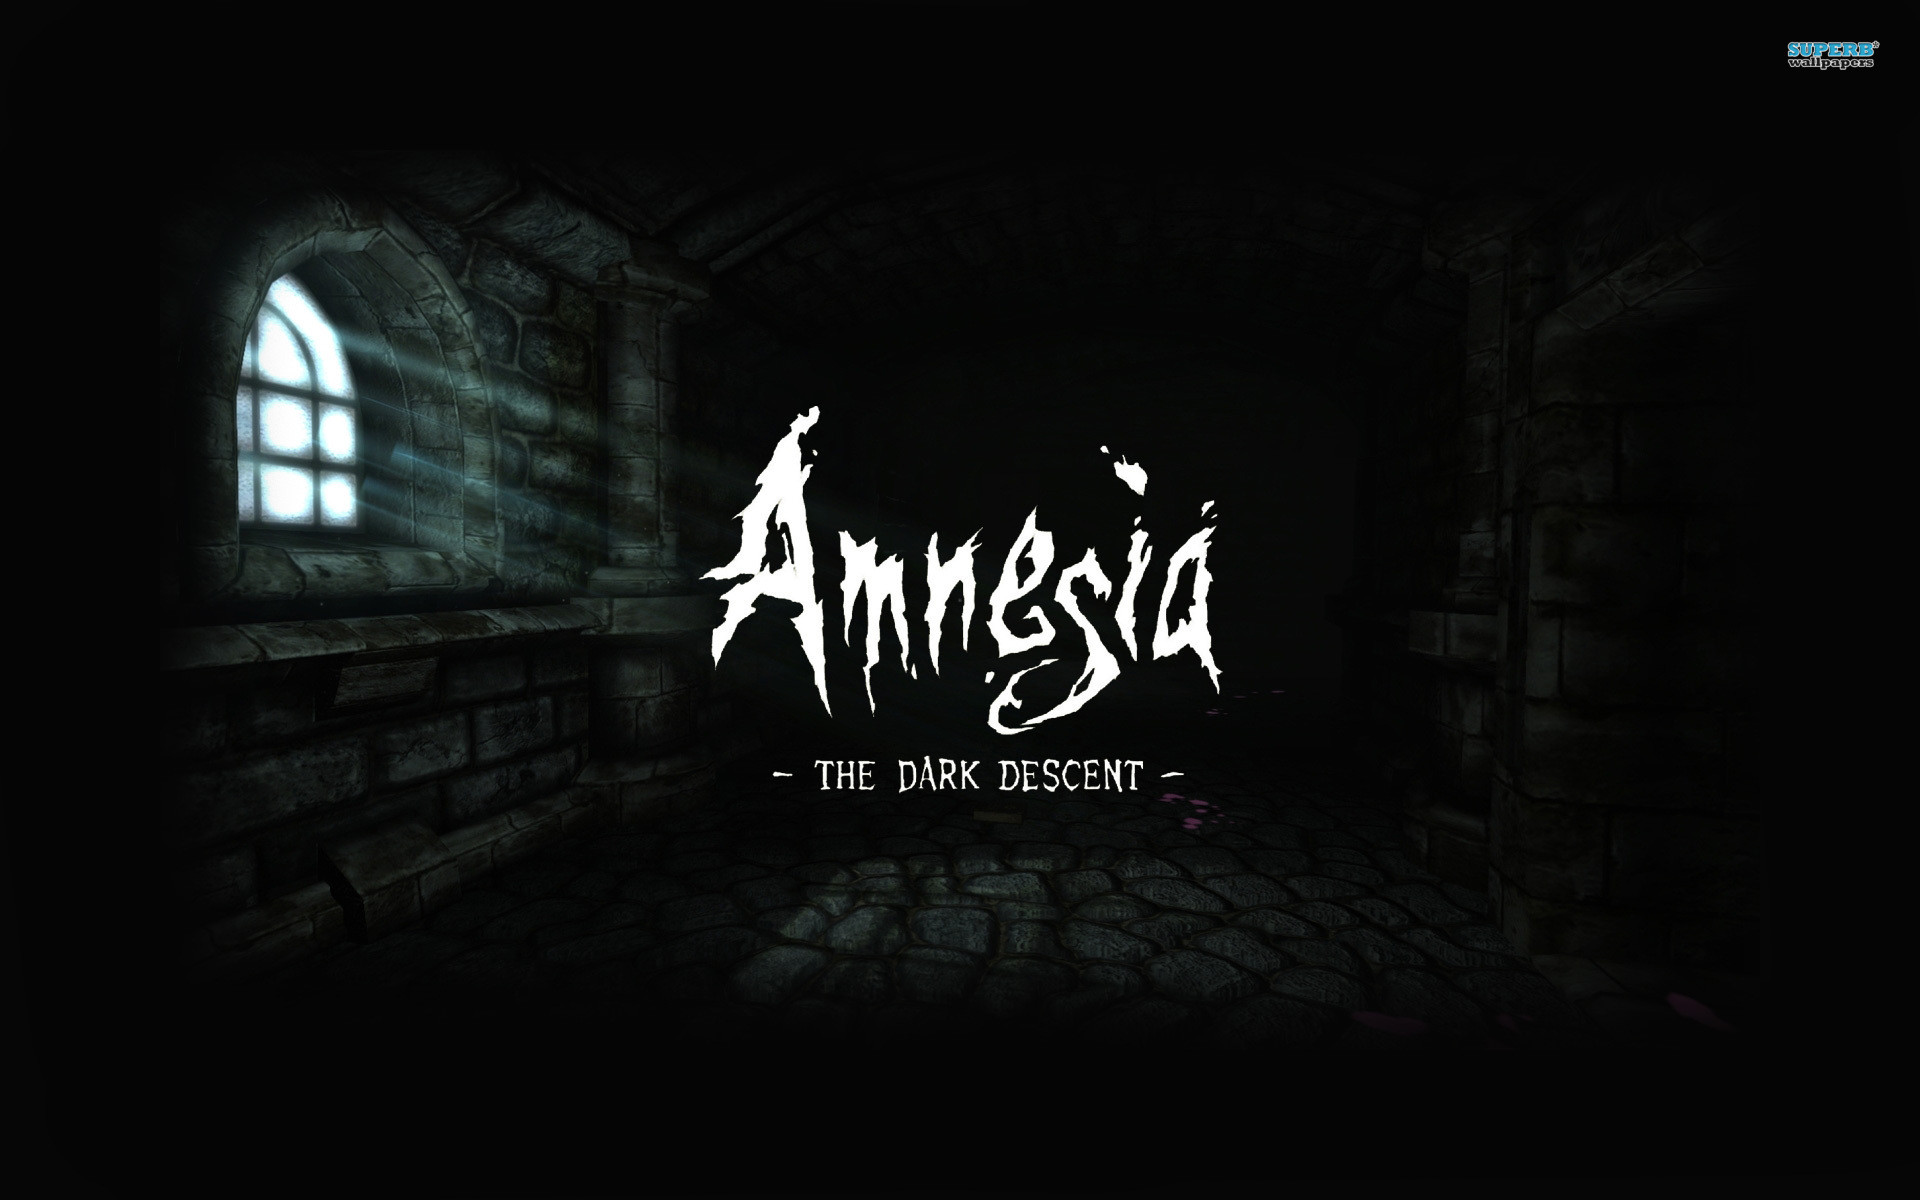 Amnesia the Dark Descent Wallpaper 86 images 1920x1200